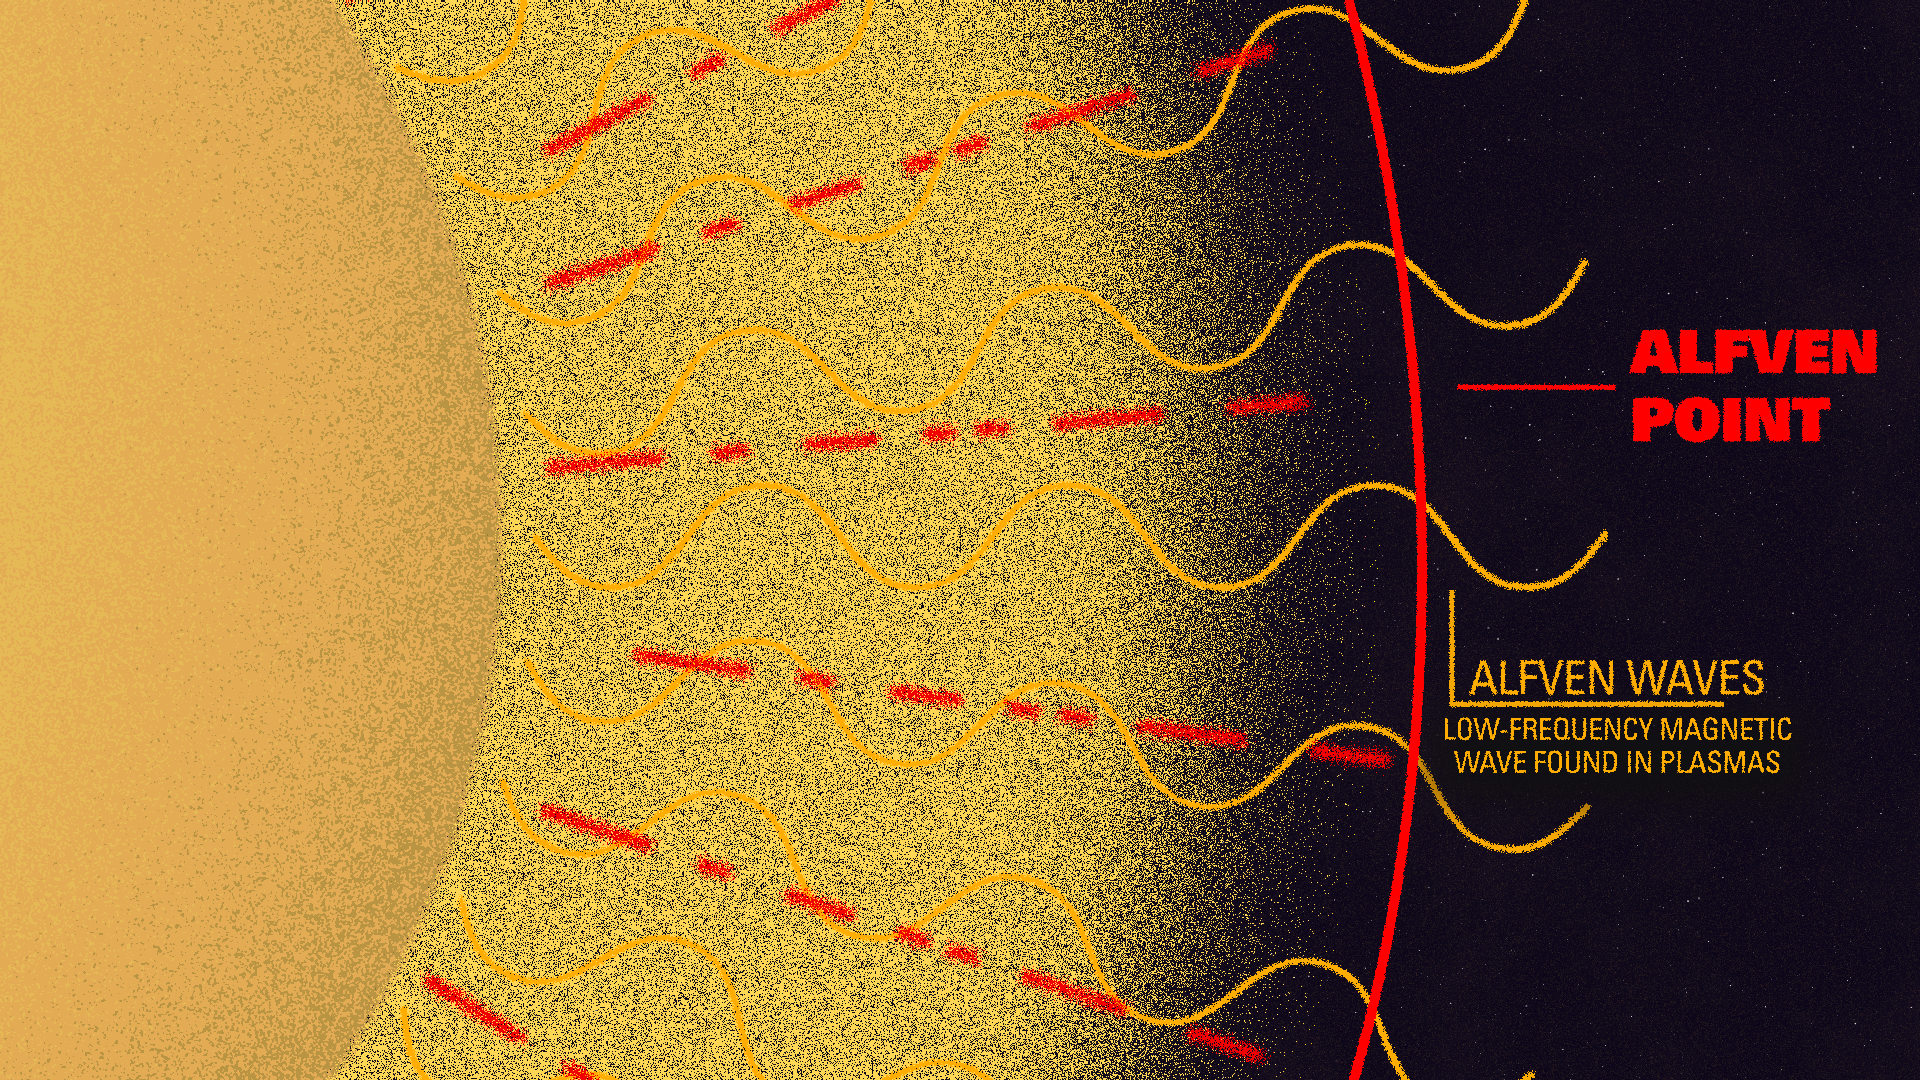 diagram of Alfvén waves and sun